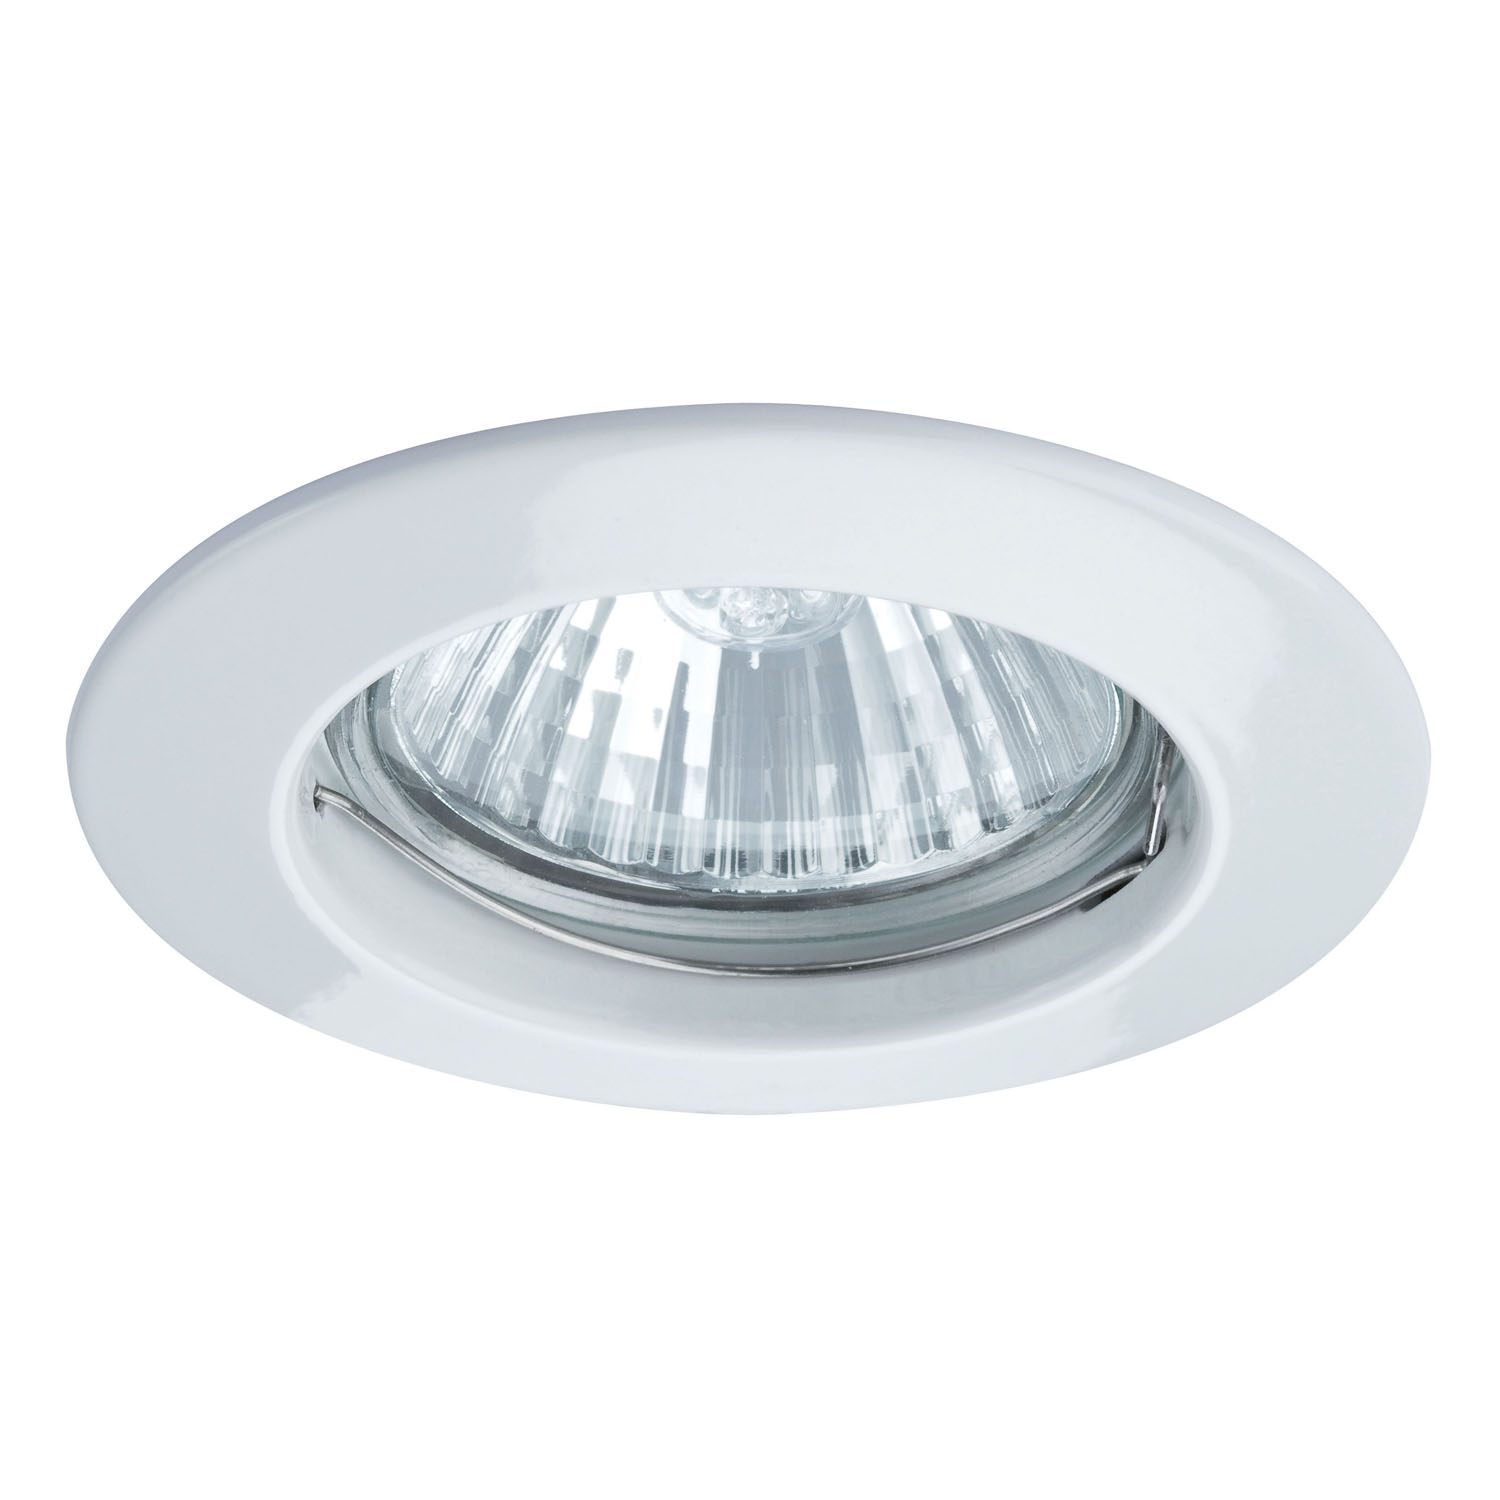 Recessed Lighting Ceiling Fan Strobe : Ceiling lights recessed perfection with efficiency